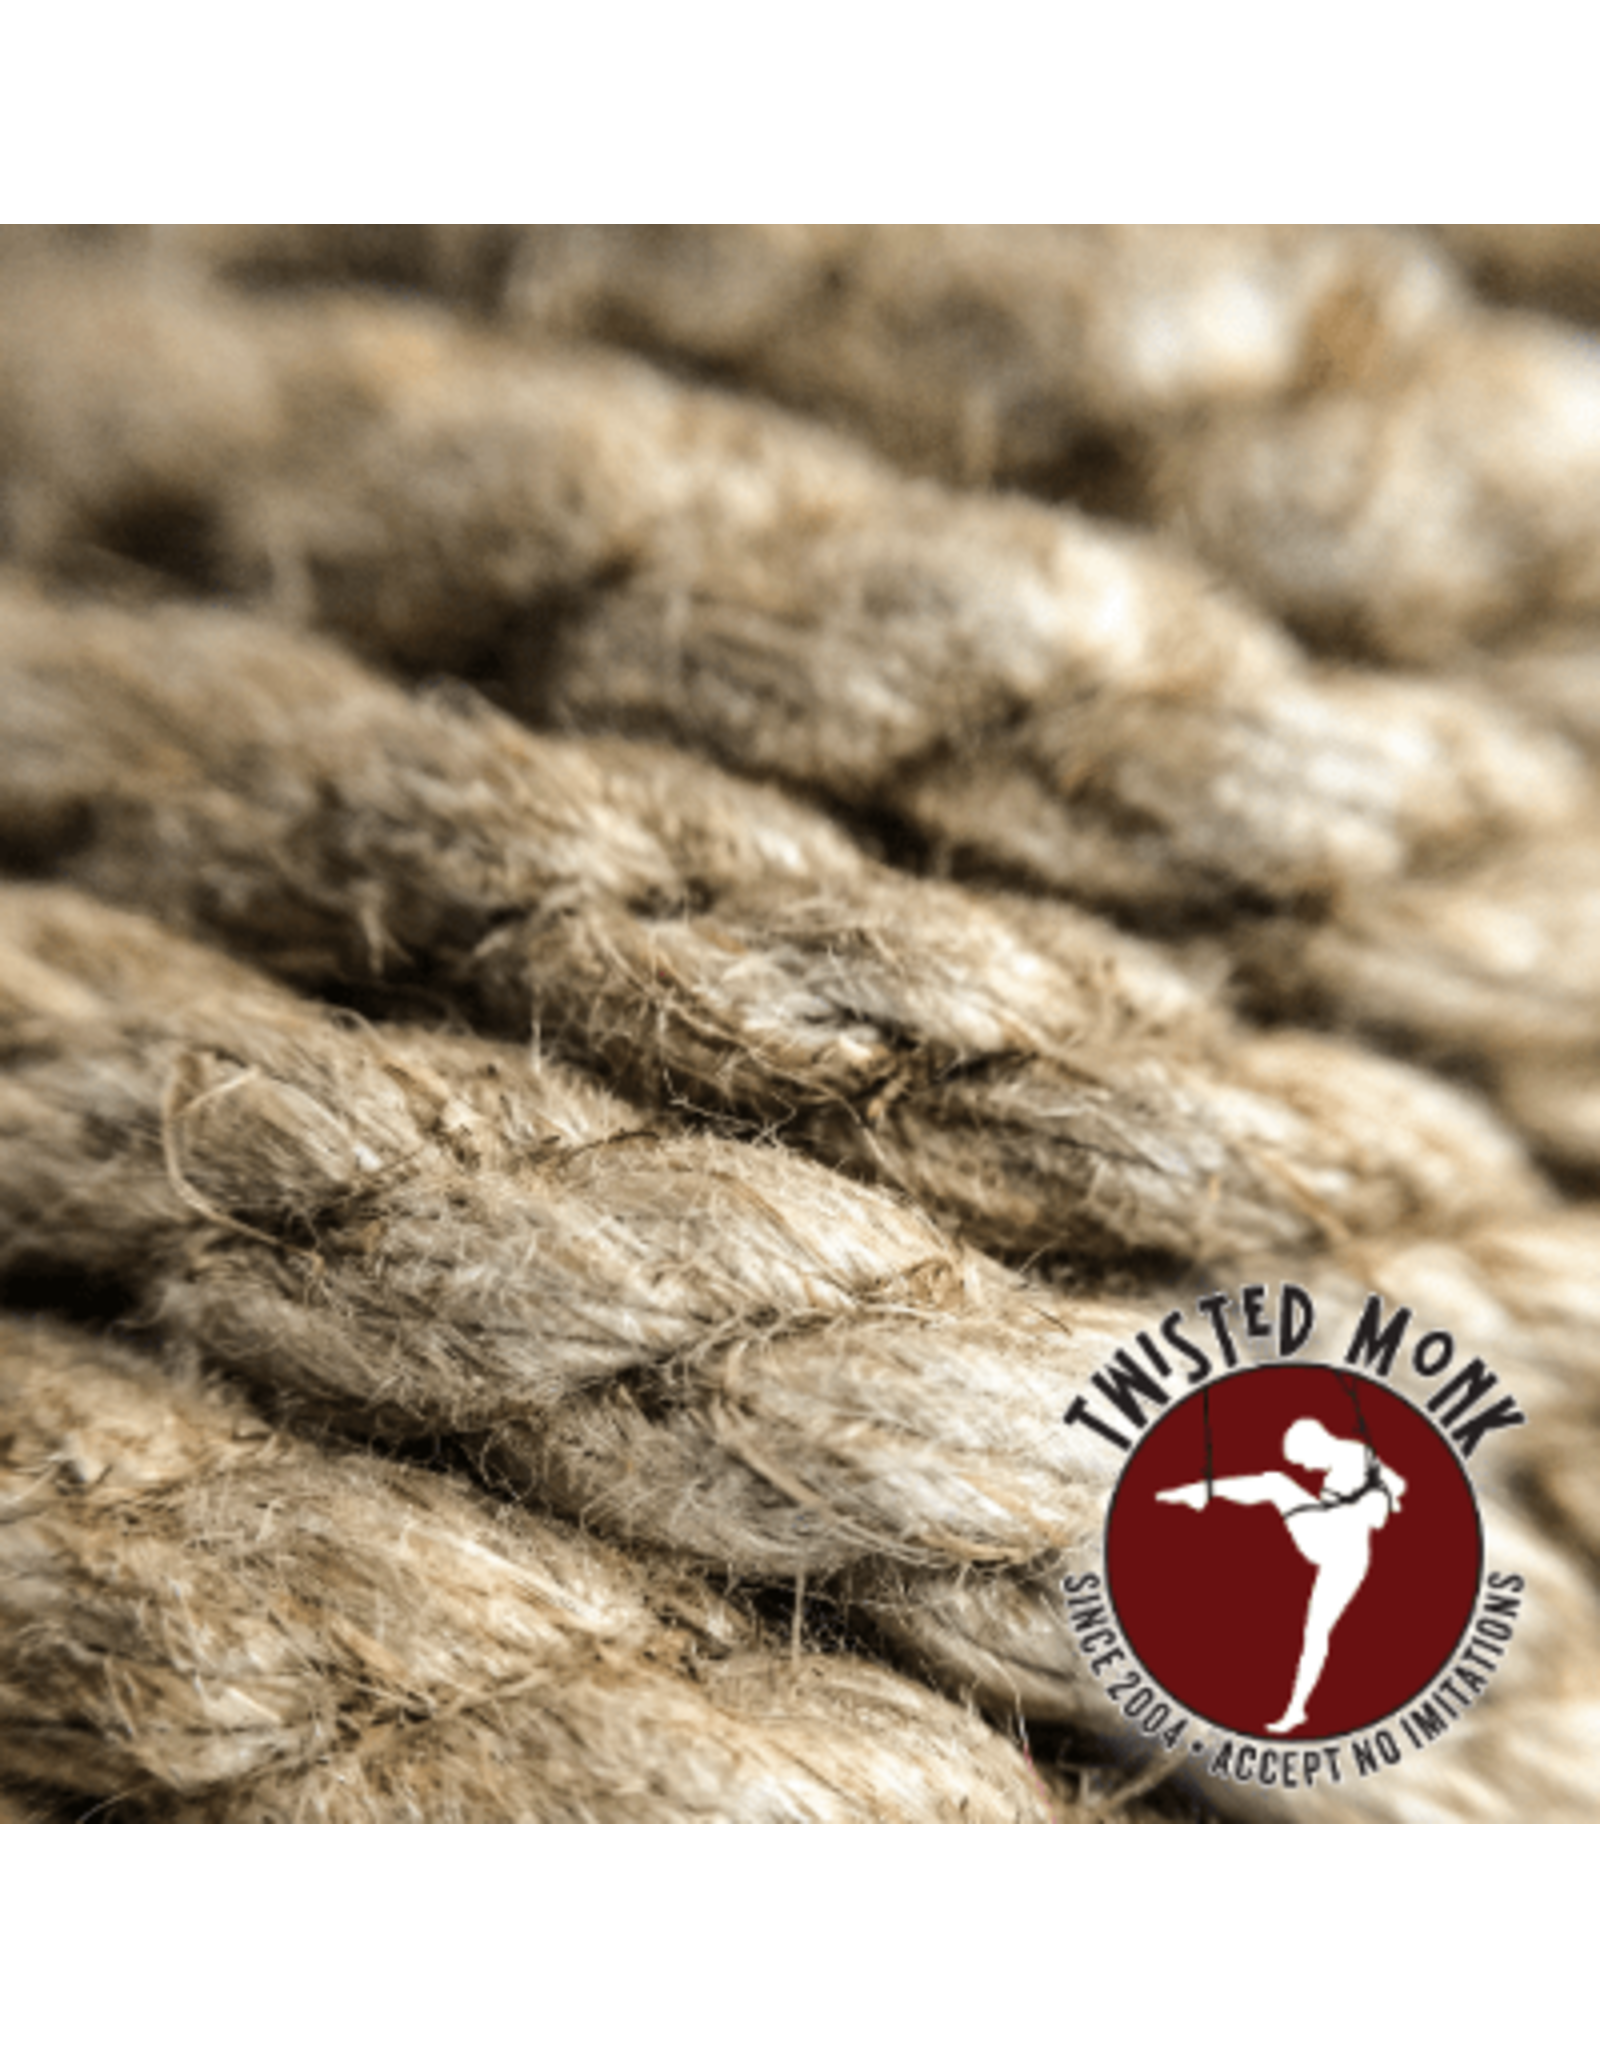 Twisted Monk Twisted Monk Rope 15ft